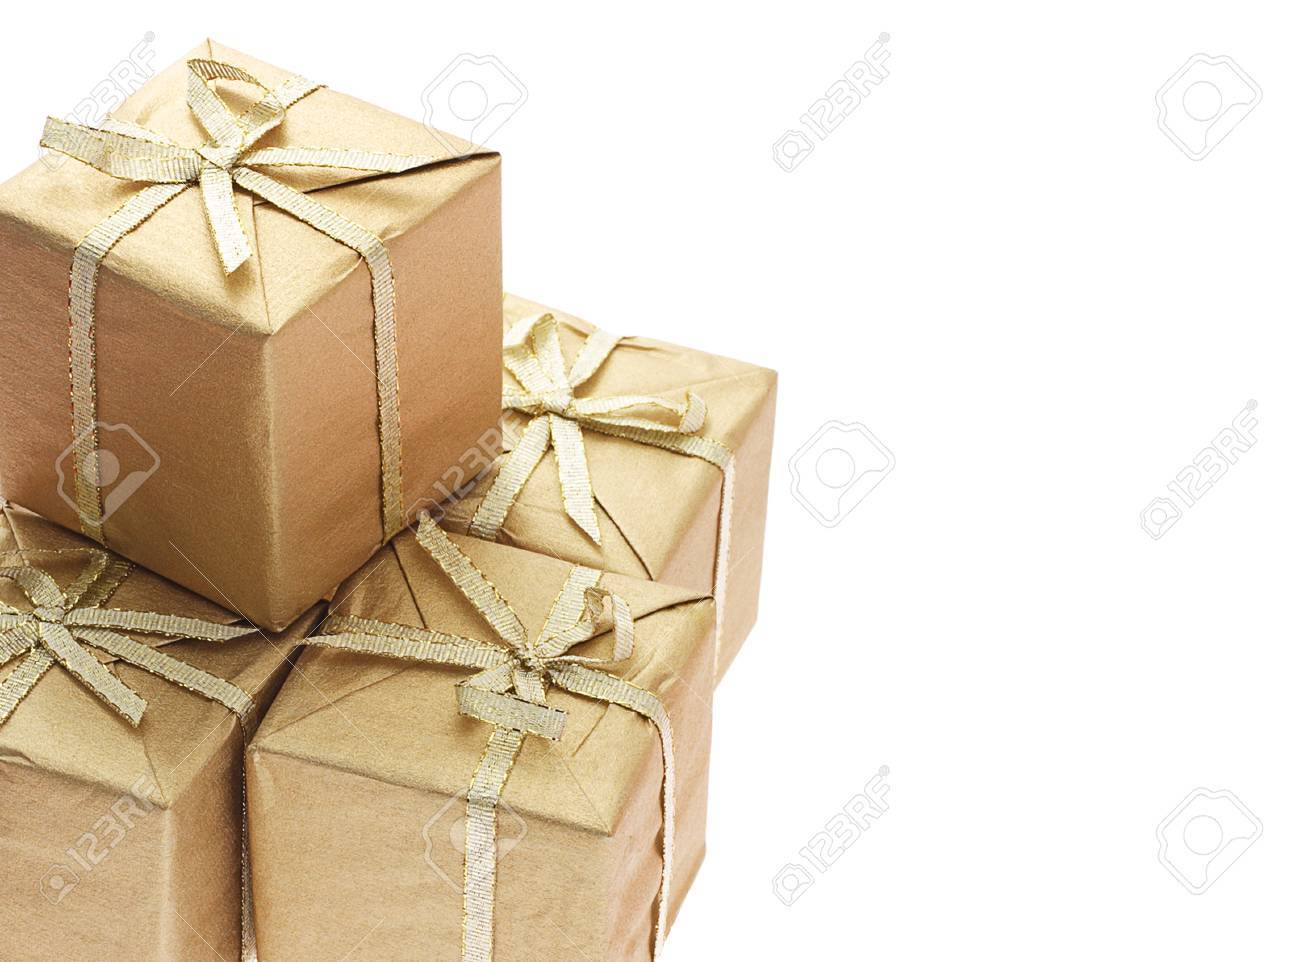 Gift boxes with bow ribbons and copy space on white background - 10412180